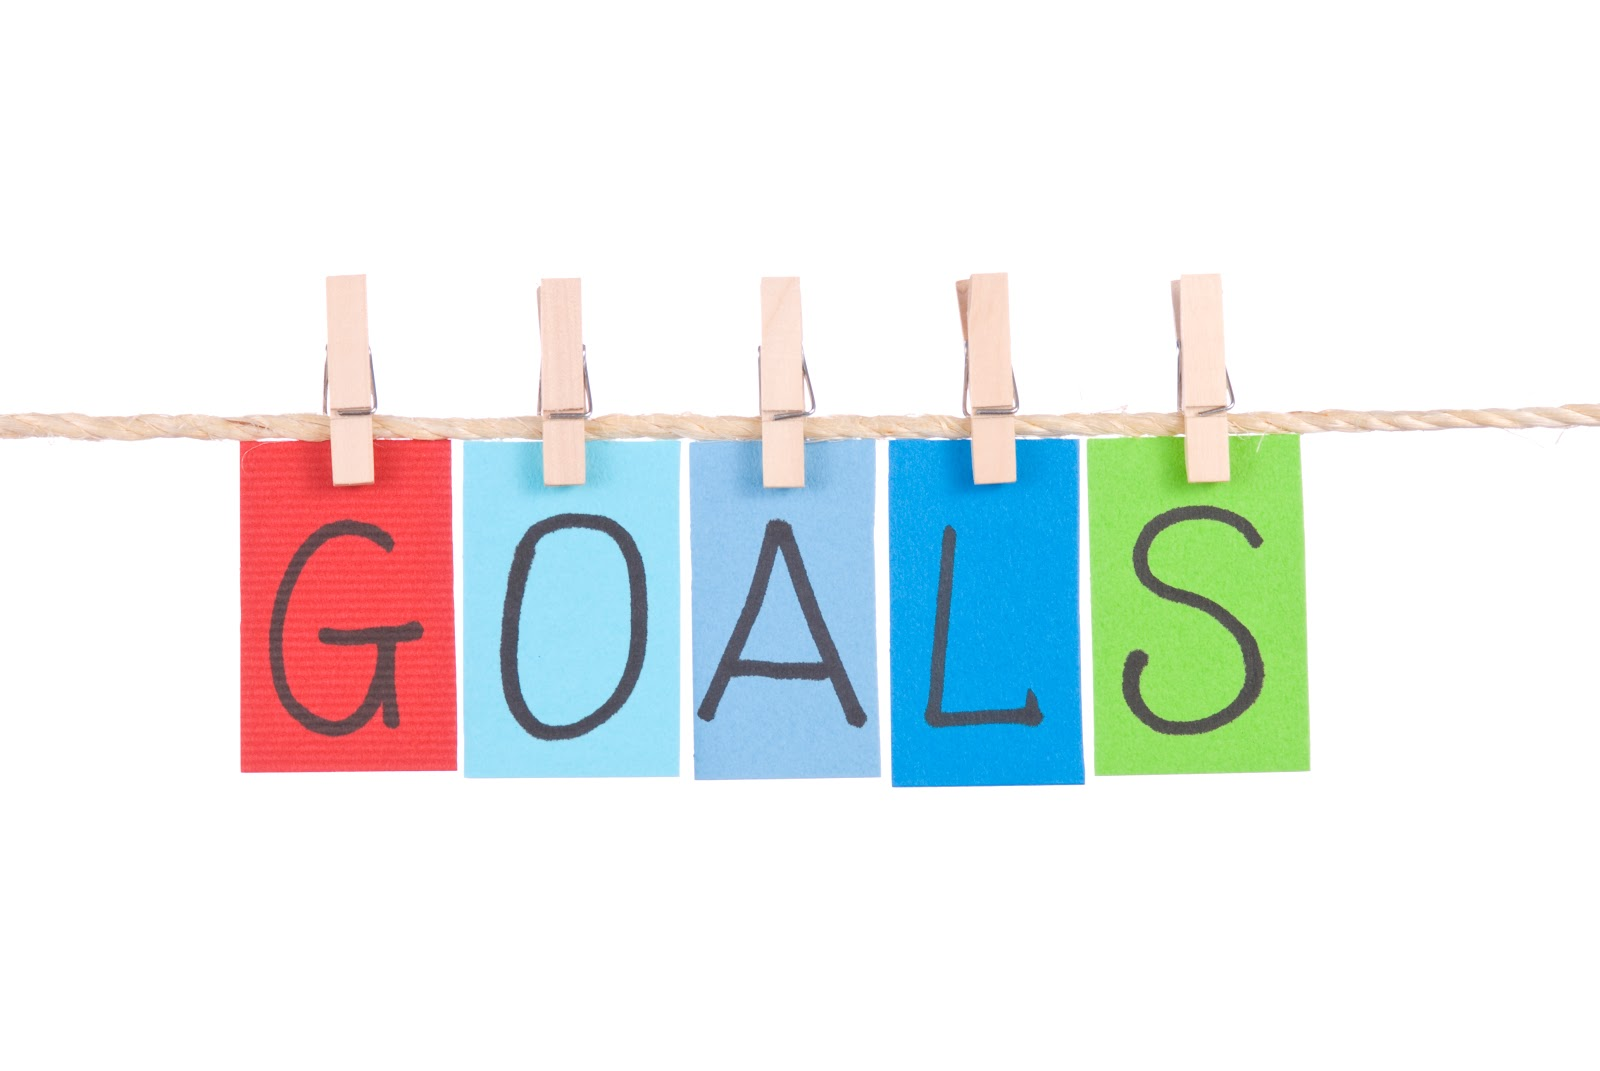 the three ideas and goals in my mind for my future